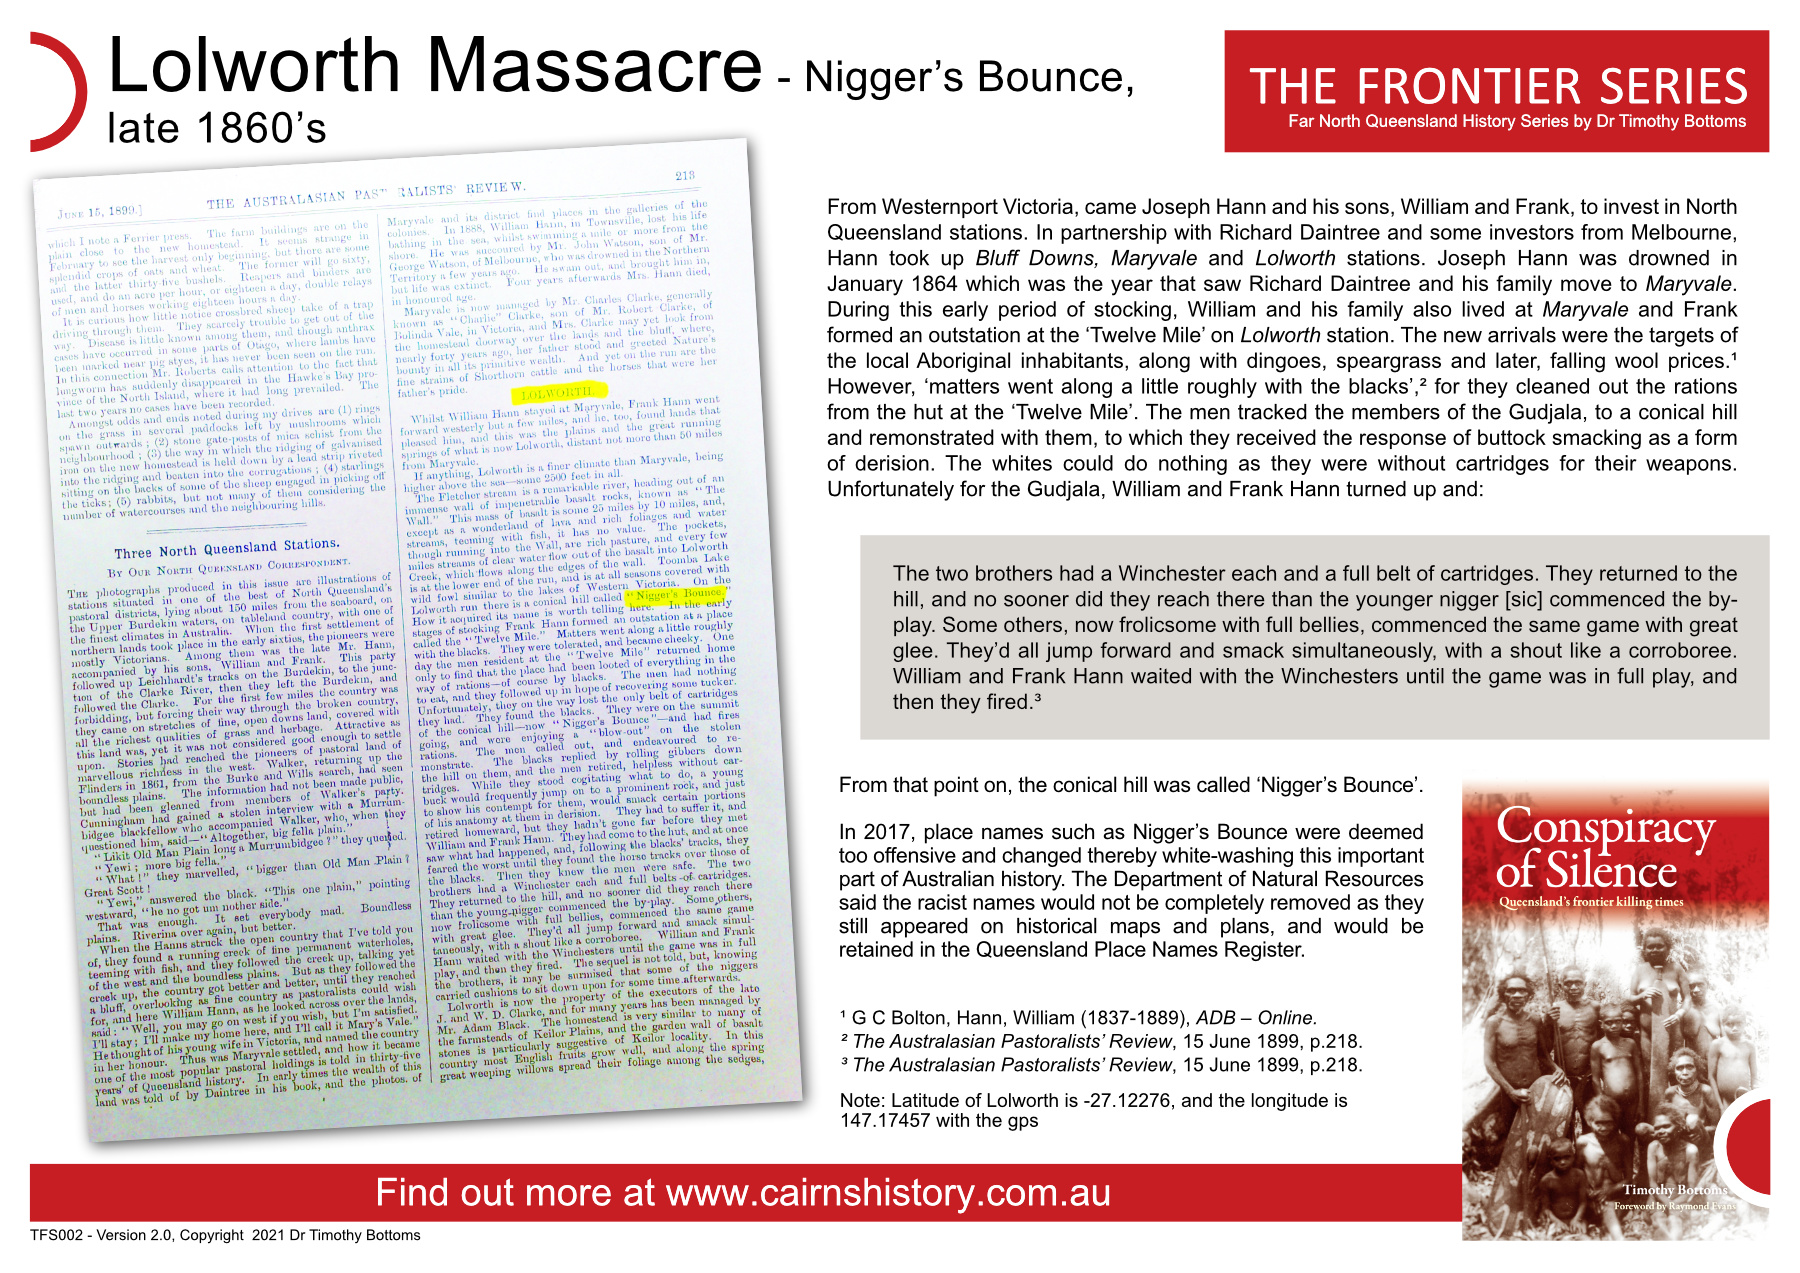 The Frontier Series Lolworth Massacre